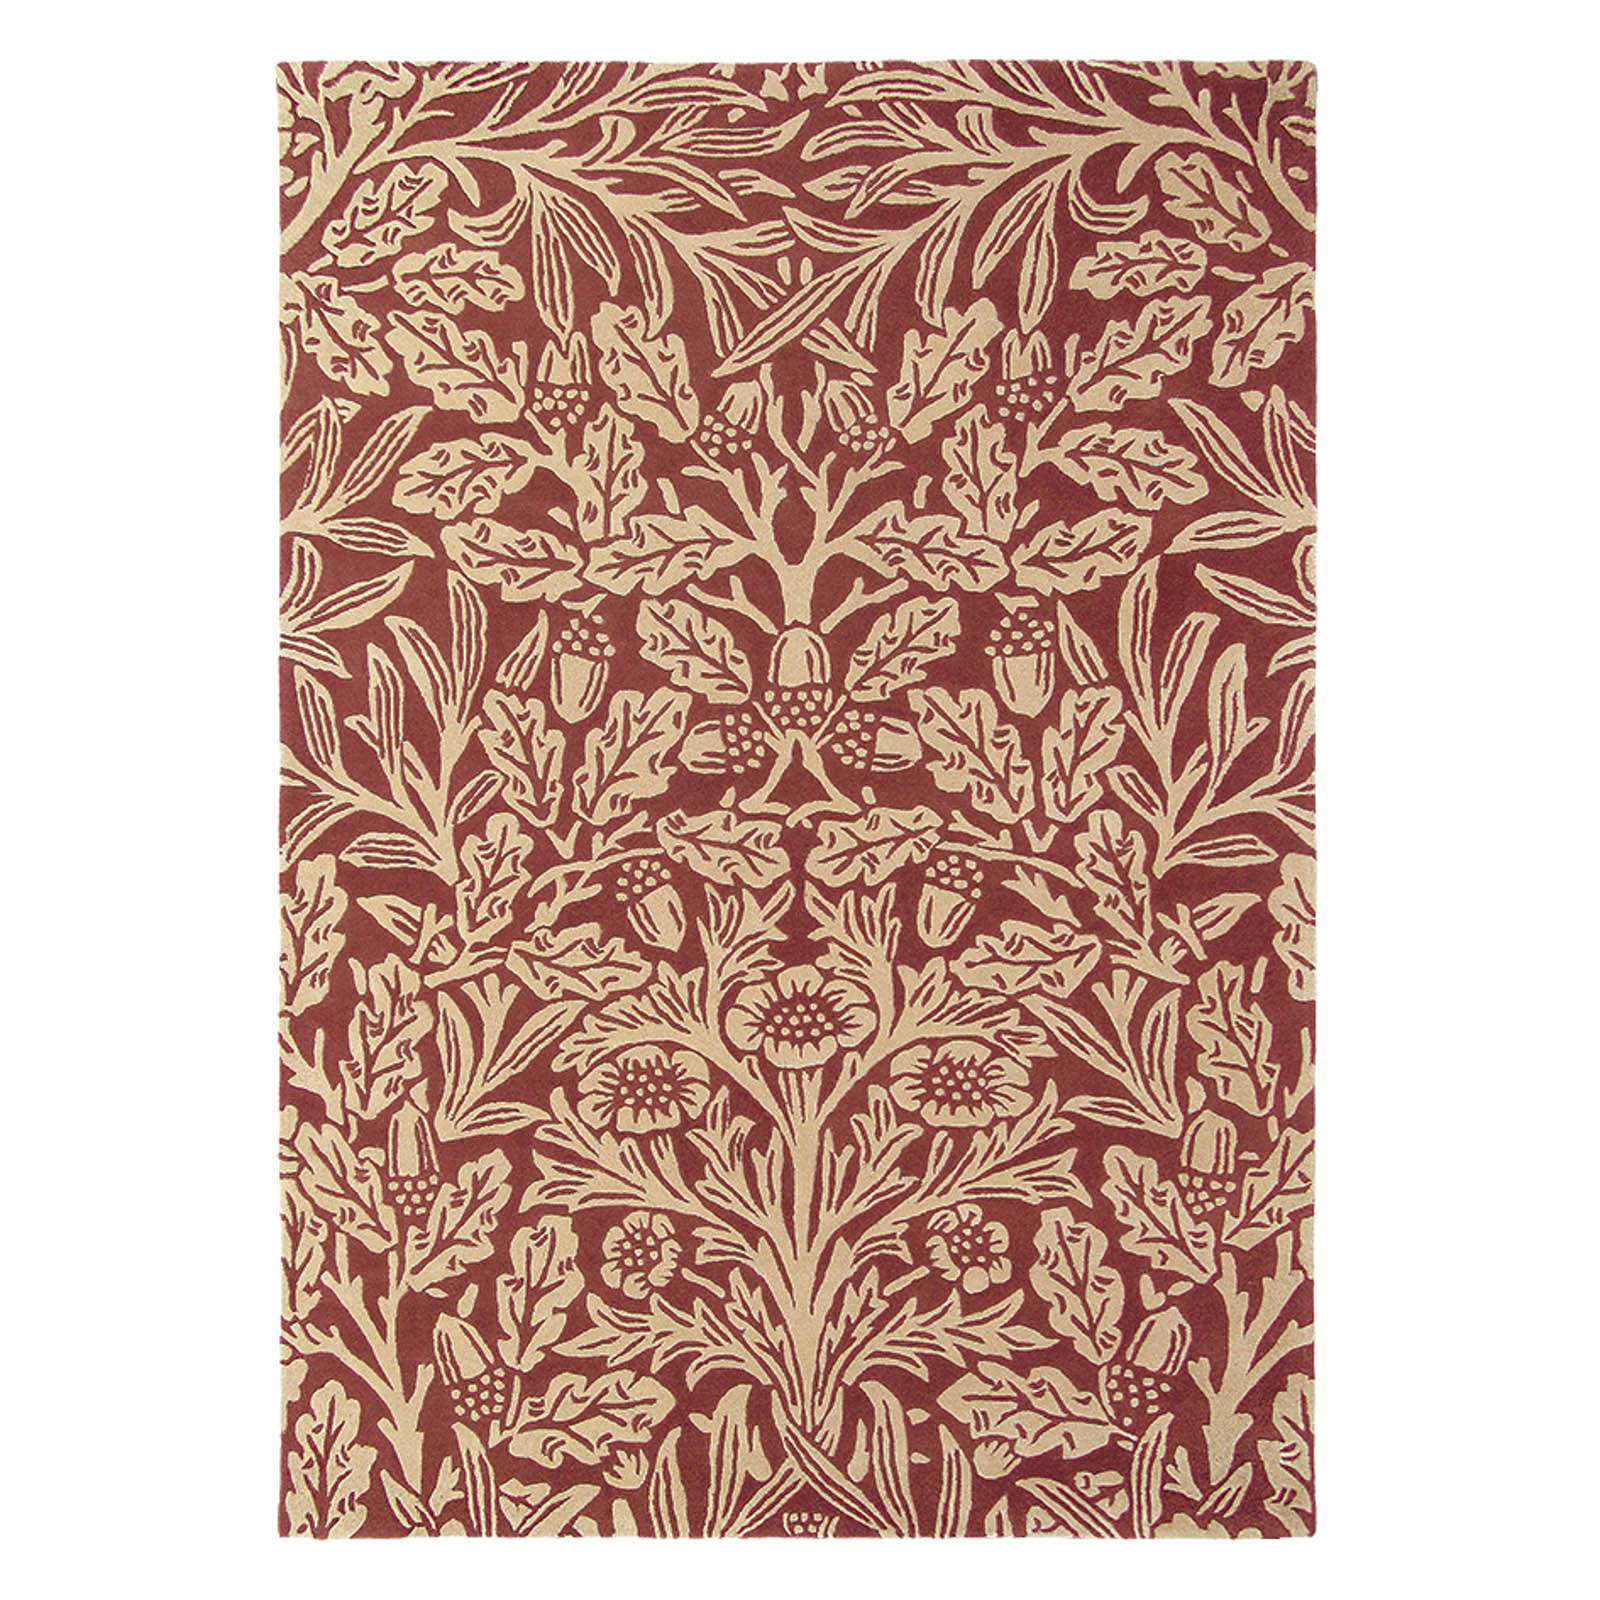 Oak Rugs 27900 Crimson by William Morris